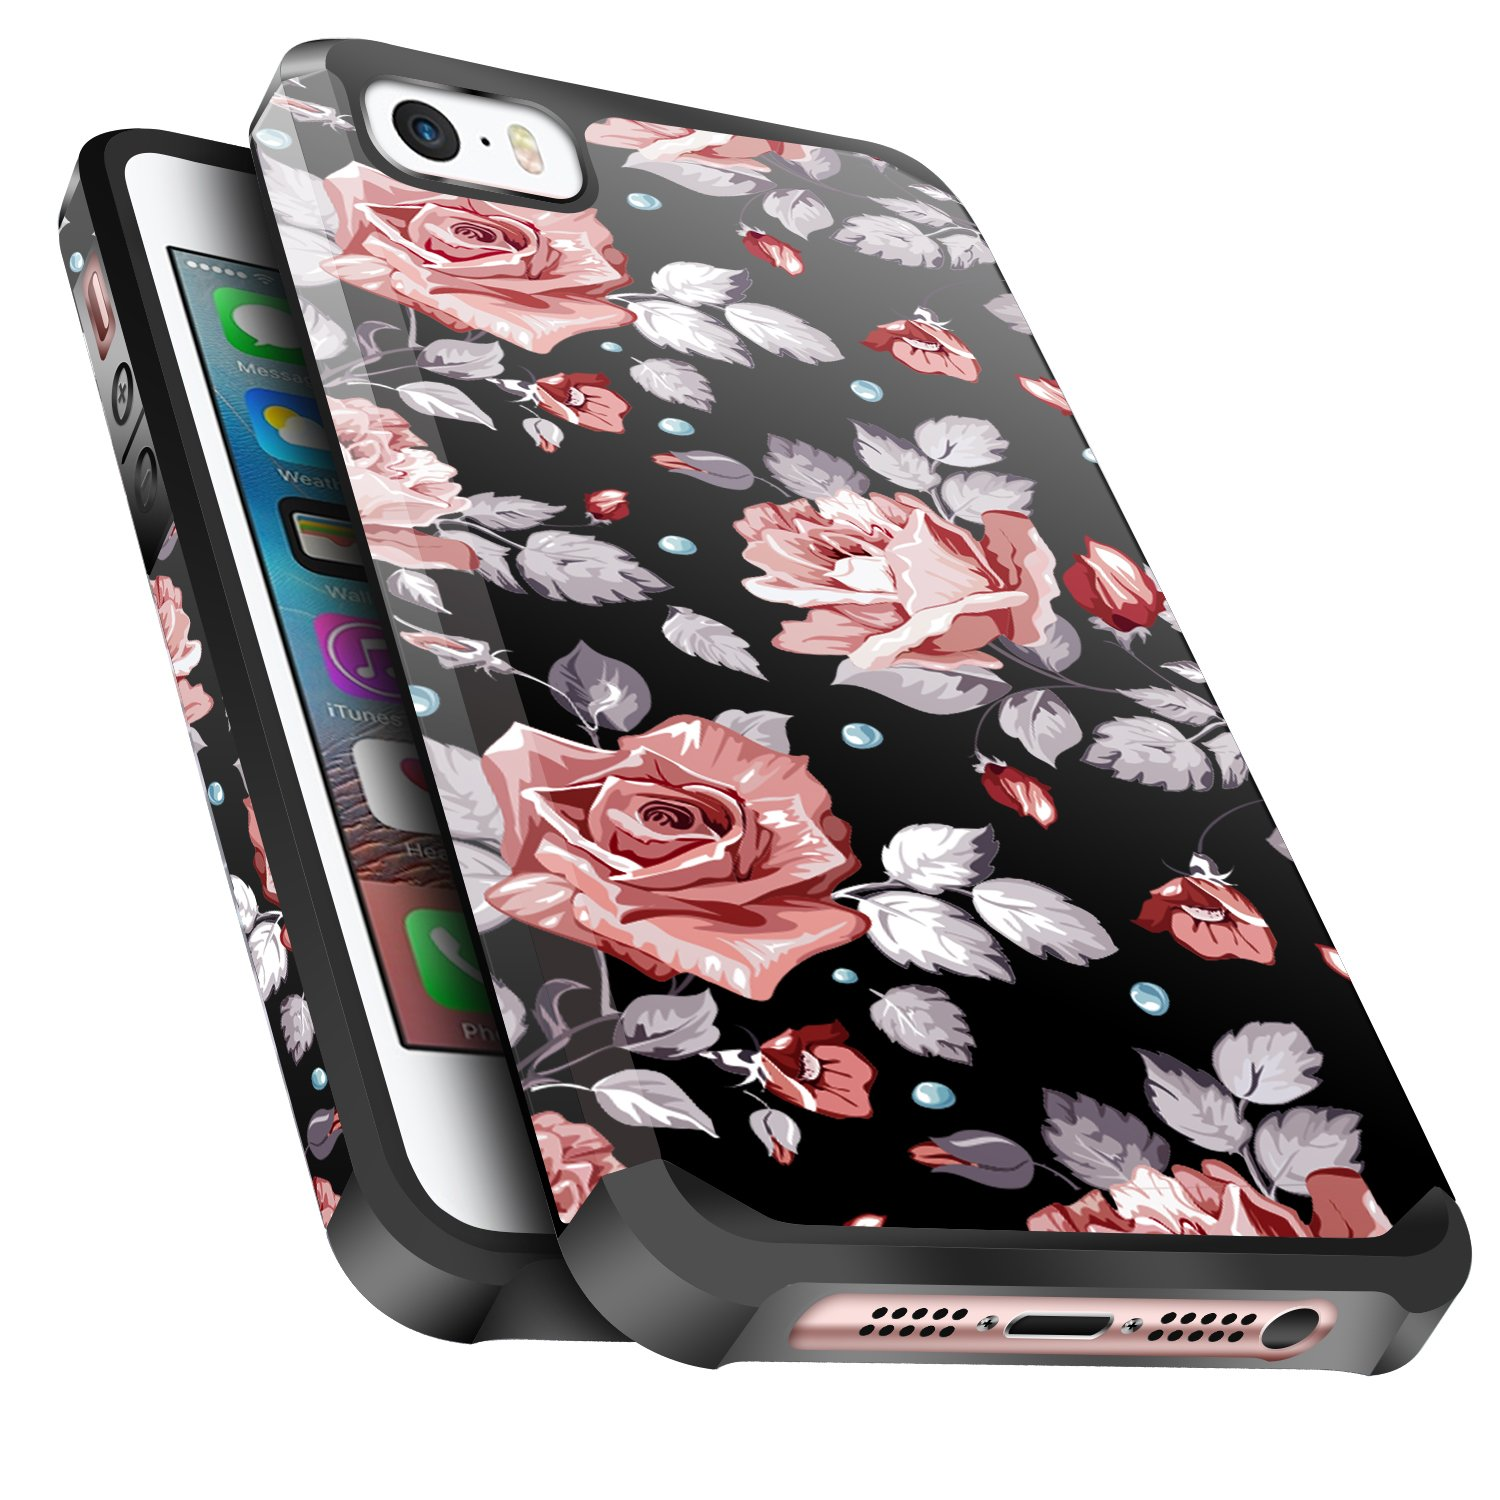 iPhone SE Case,iPhone 5S/5 Case, Miss Arts Anti-Scratch Protective Kit with [Drop Protection] Heavy Duty Dual Layer Hybrid Sturdy Armor Cover Case for iPhone SE 5s 5 -Rose Gold Flower